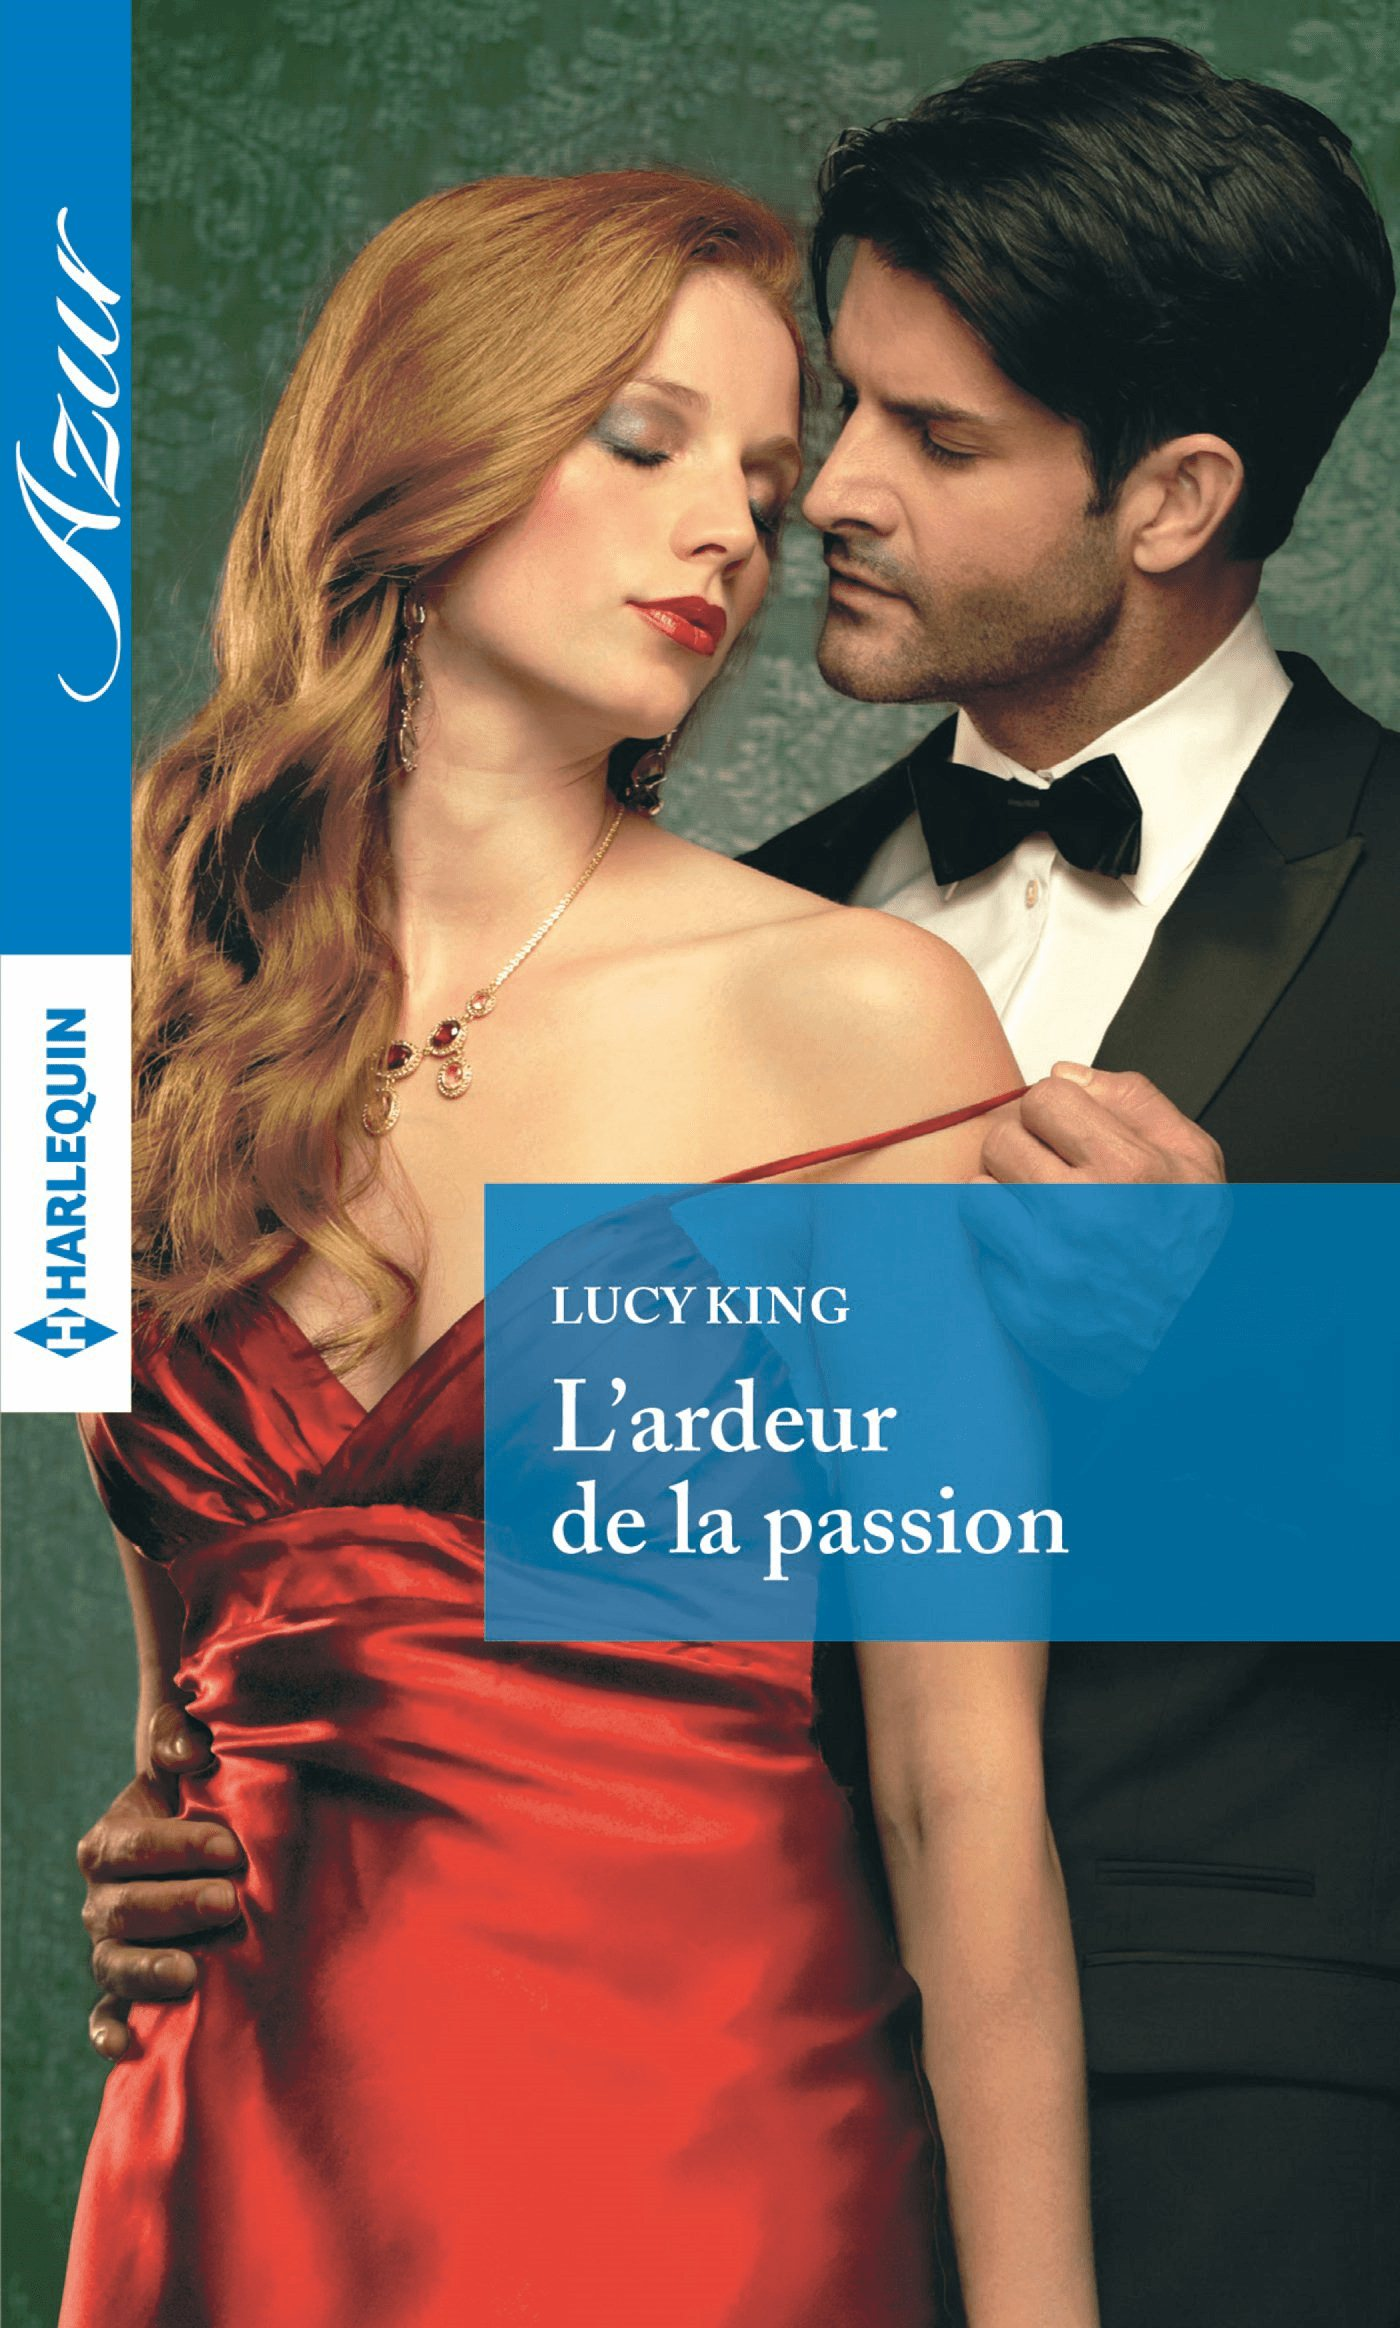 Couverture : Lucy King, L'ardeur de la passion, Harlequin